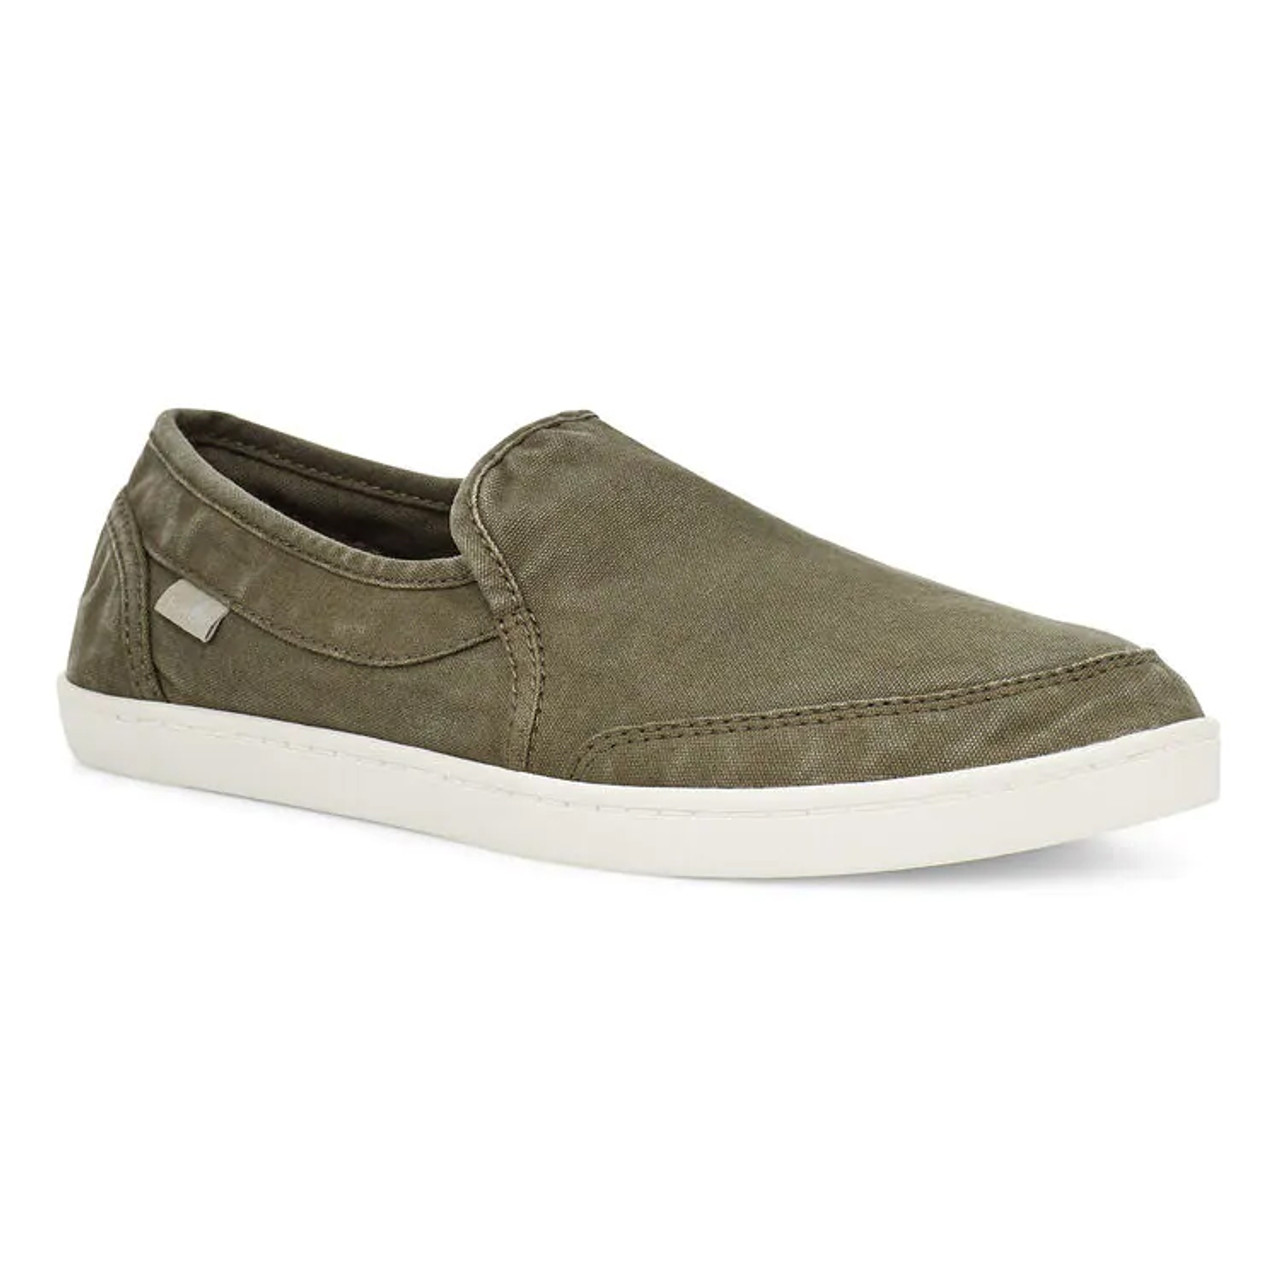 Sanuk Women's Shoes - Pair O Dice - Military Green - Surf and Dirt